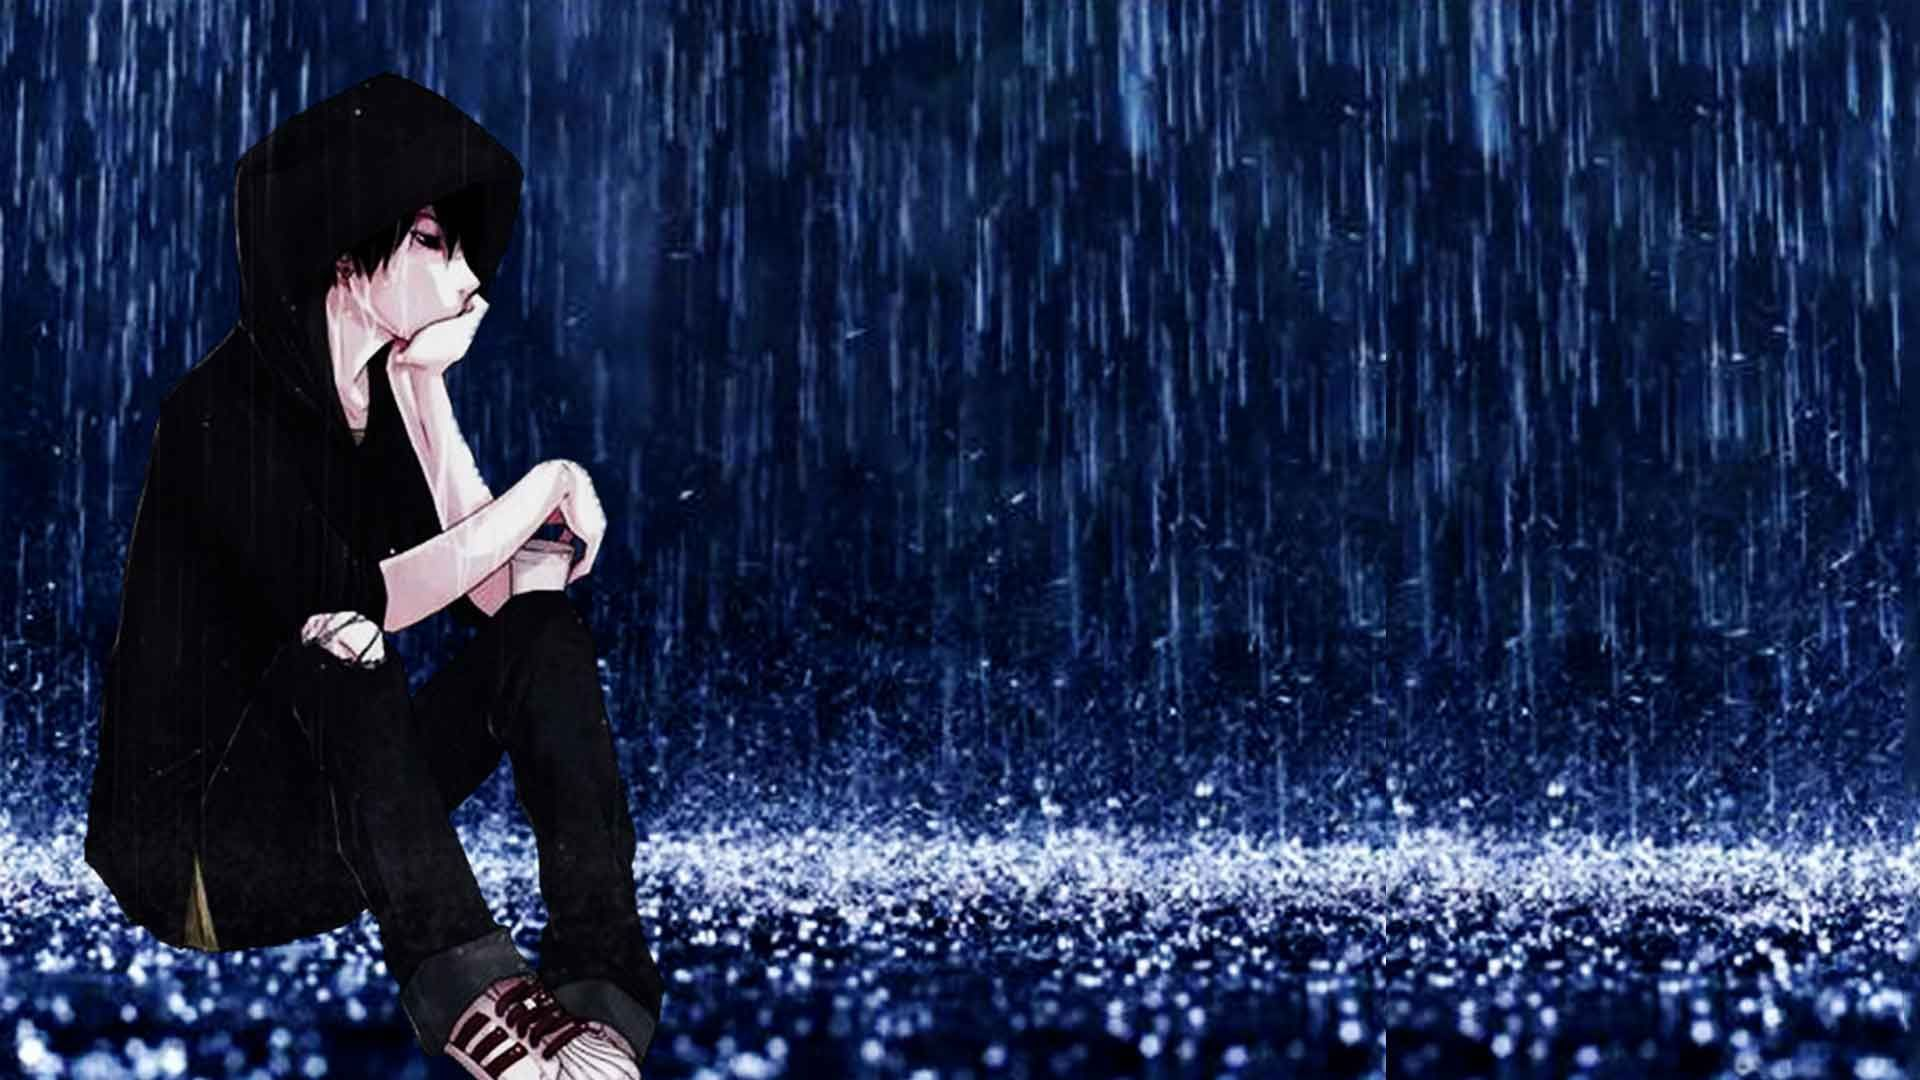 Rain sad anime wallpapers top free rain sad anime - Anime rain wallpaper ...